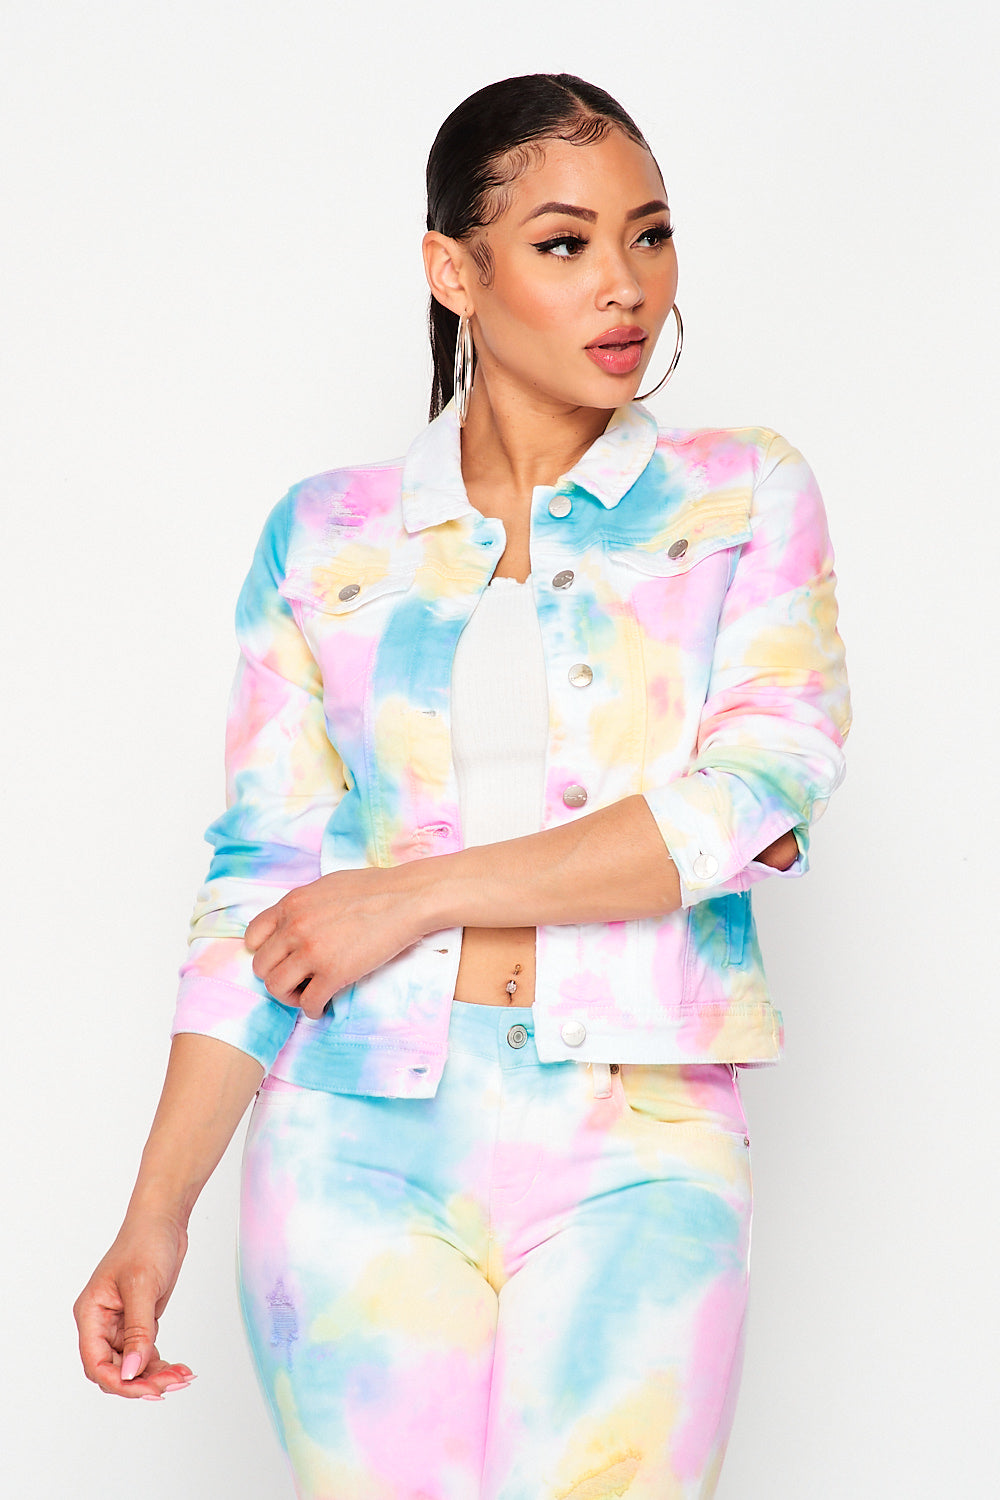 Candy Denim Tie-Dye Jacket - Fashion House USA